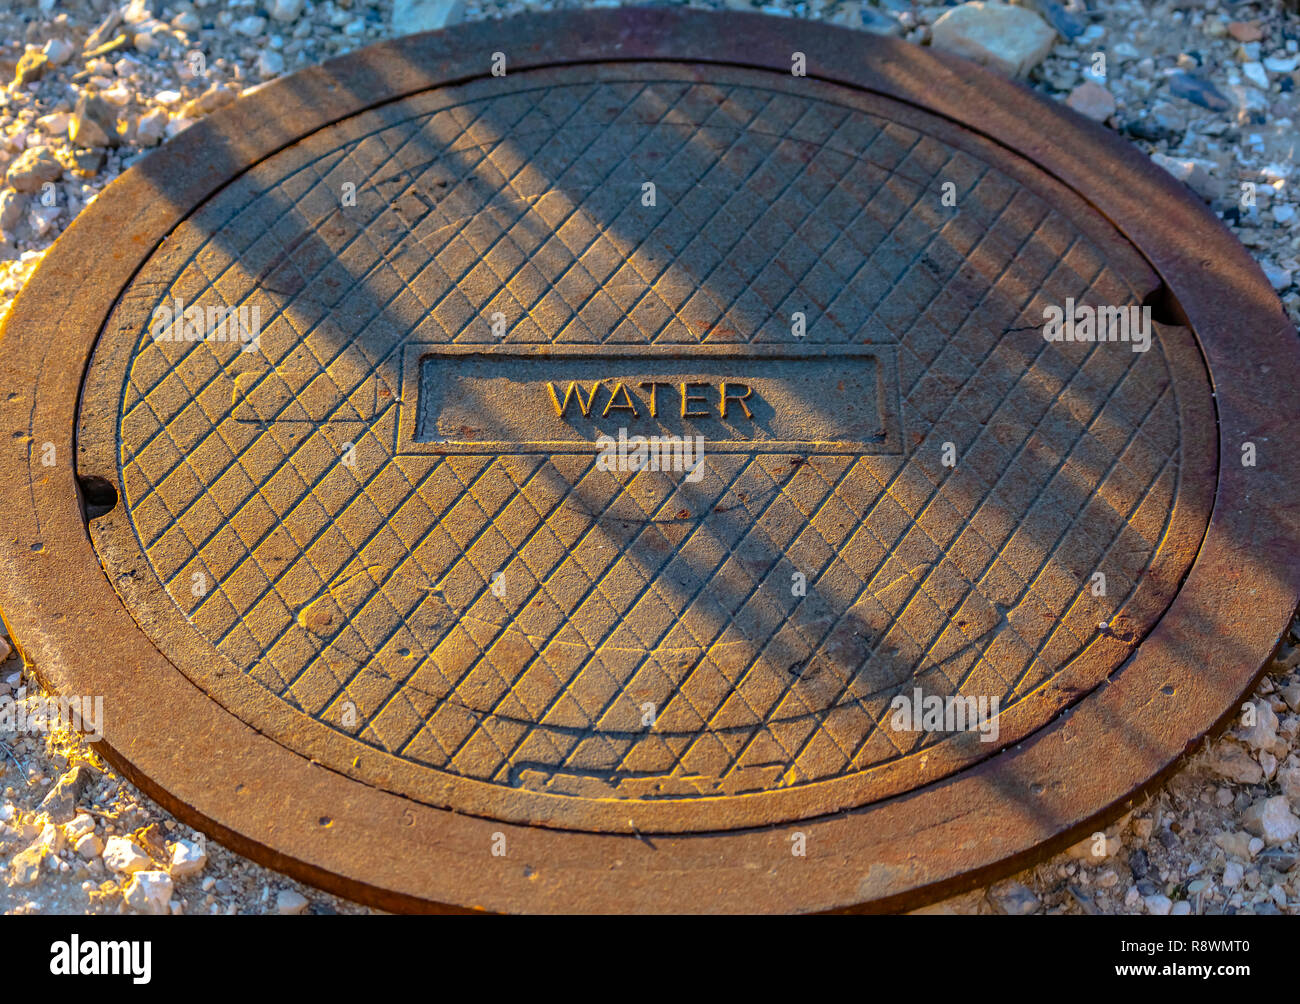 Man hole lid with label of water on the front - Stock Image